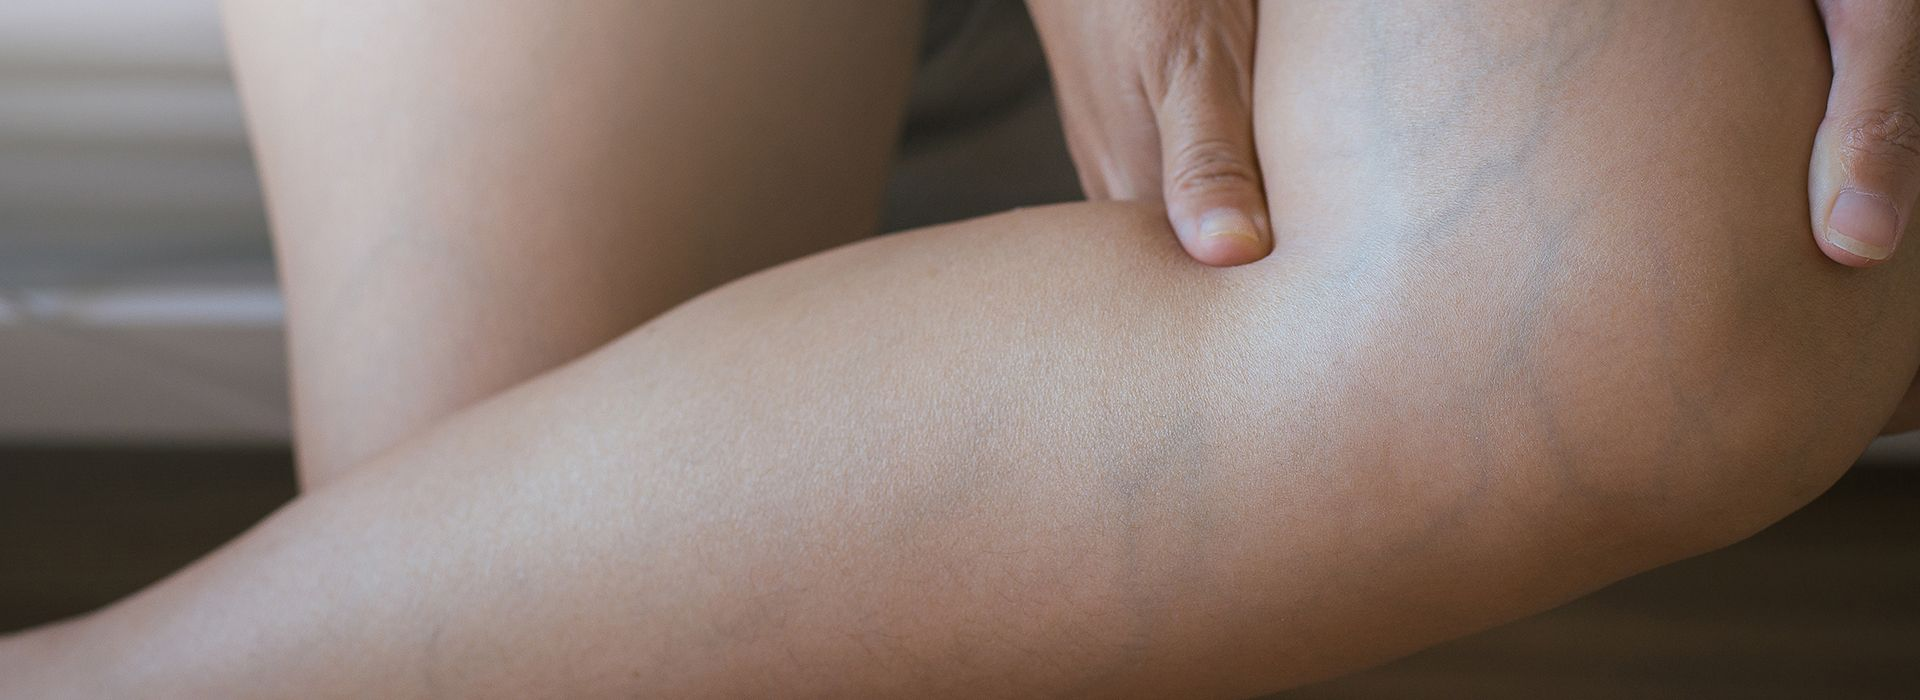 Are you looking for experts in minimally invasive varicose vein treatment? In this article, we introduce you to the best varicose vein dr in Paramus, New Jersey.